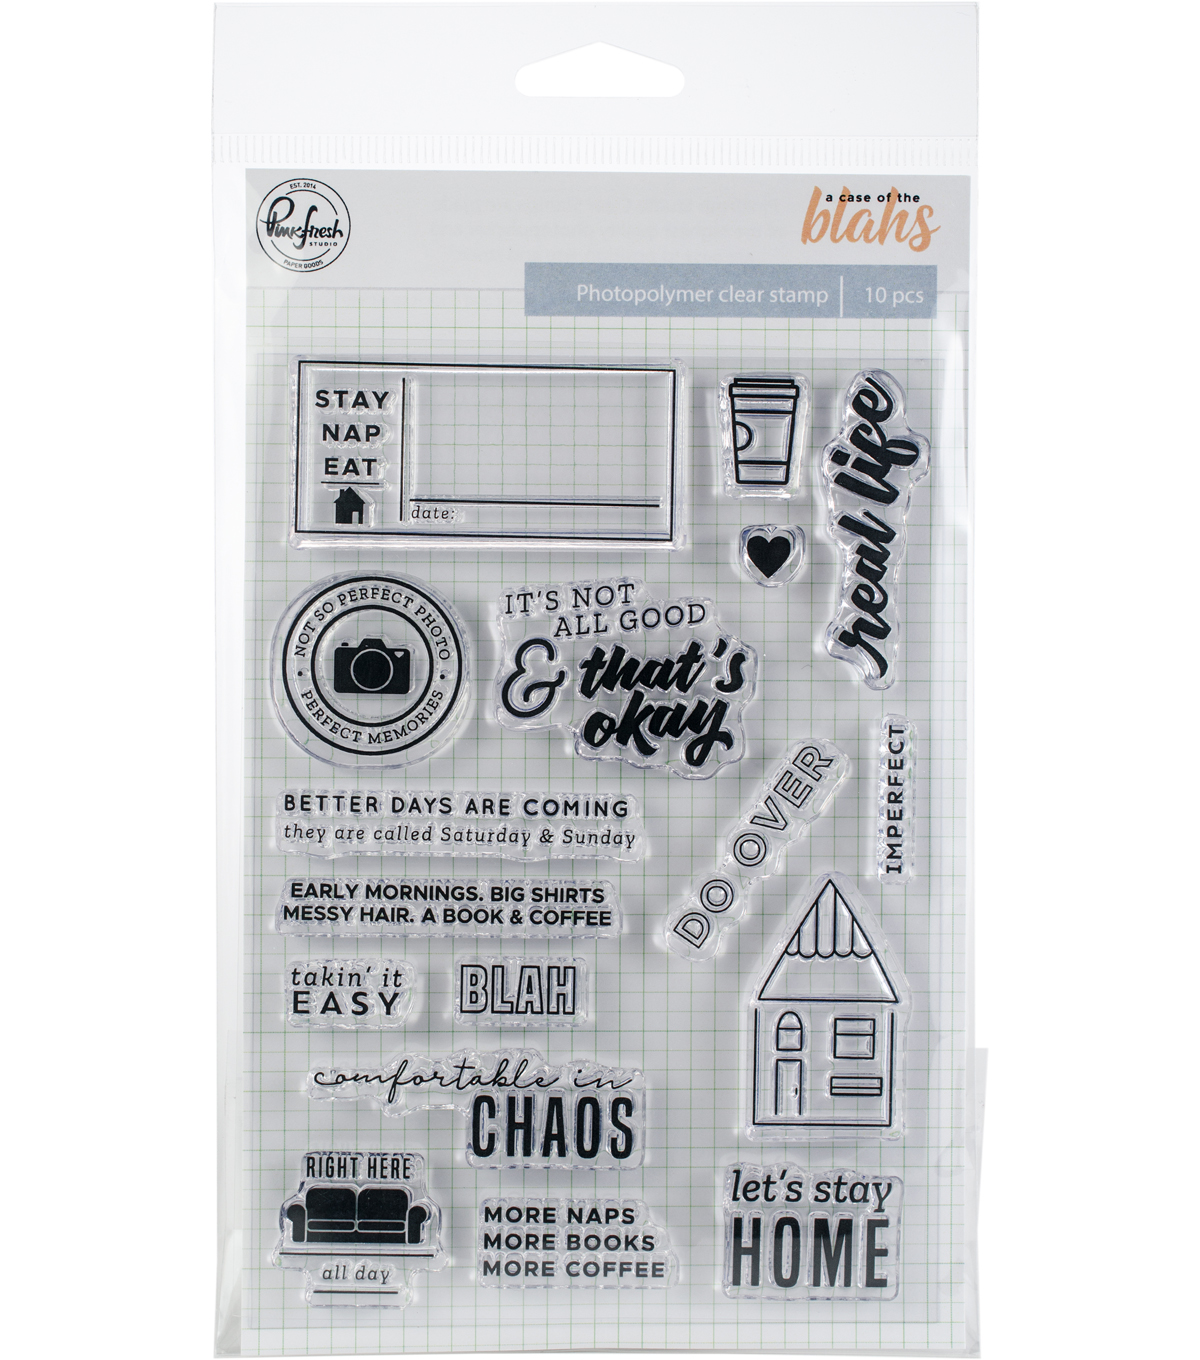 Pinkfresh Studio A Case of the Blahs 18 pk Photopolymer Clear Stamps